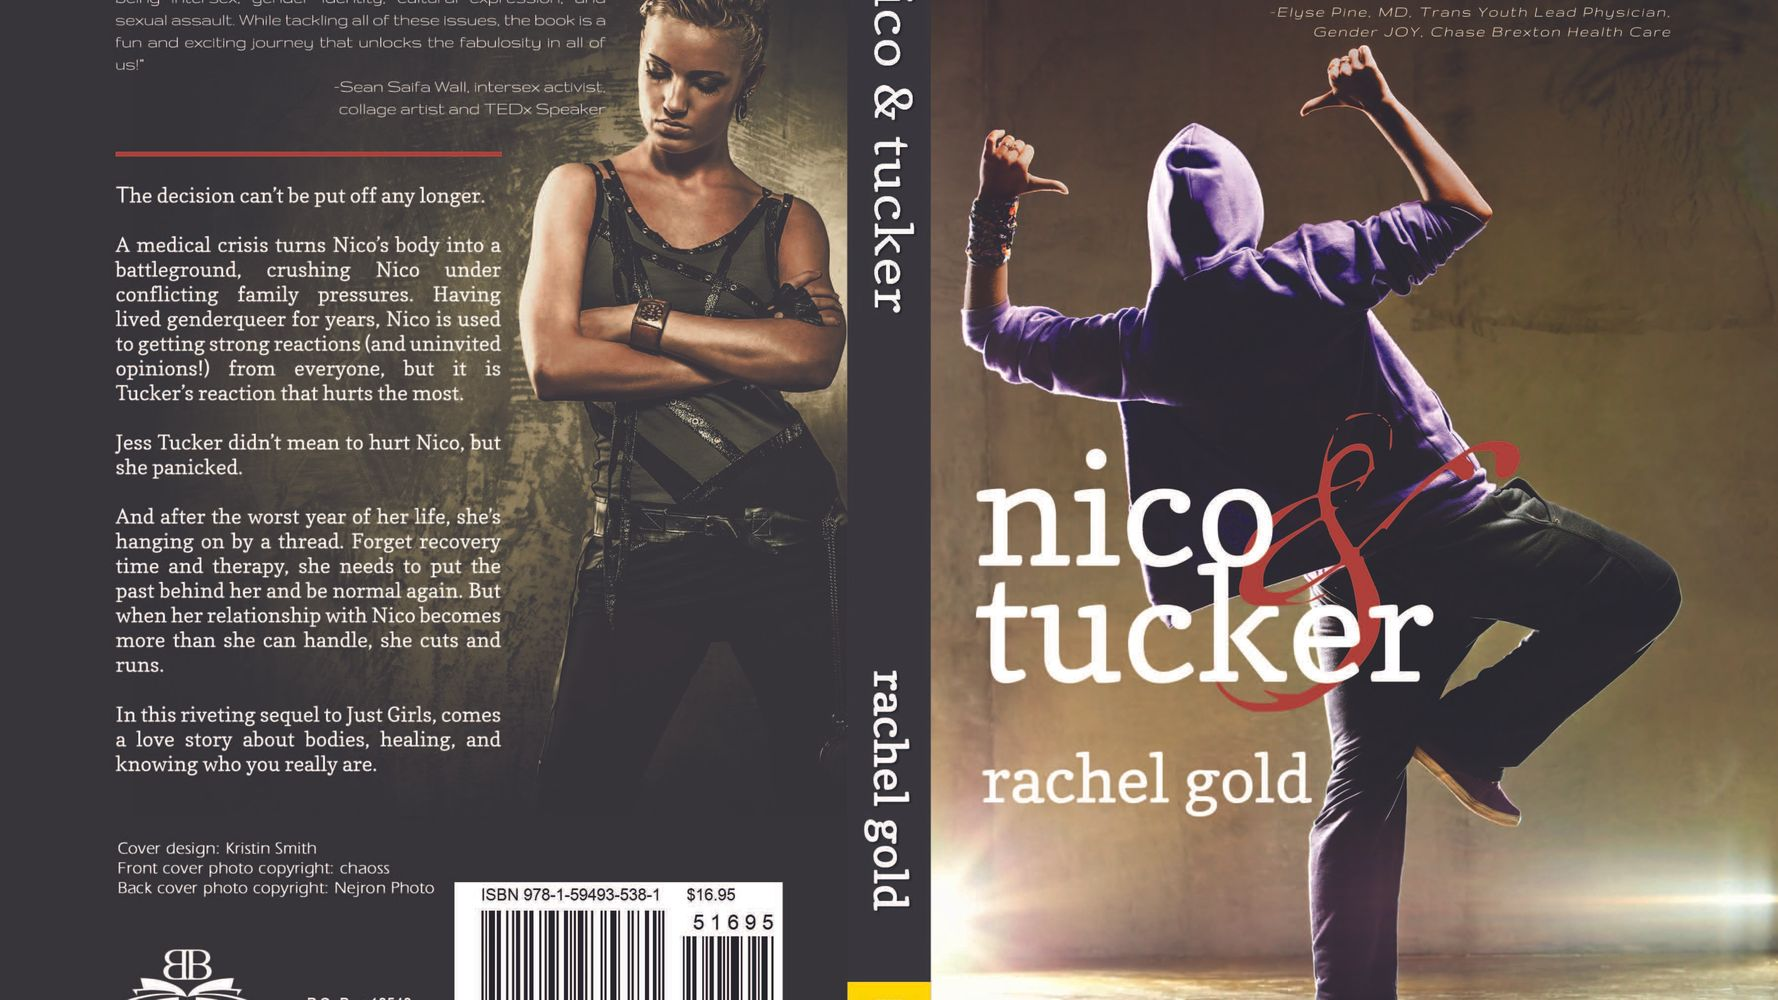 Rachel Gold On Her New YA Book About A Non-Binary Teen: Nico And